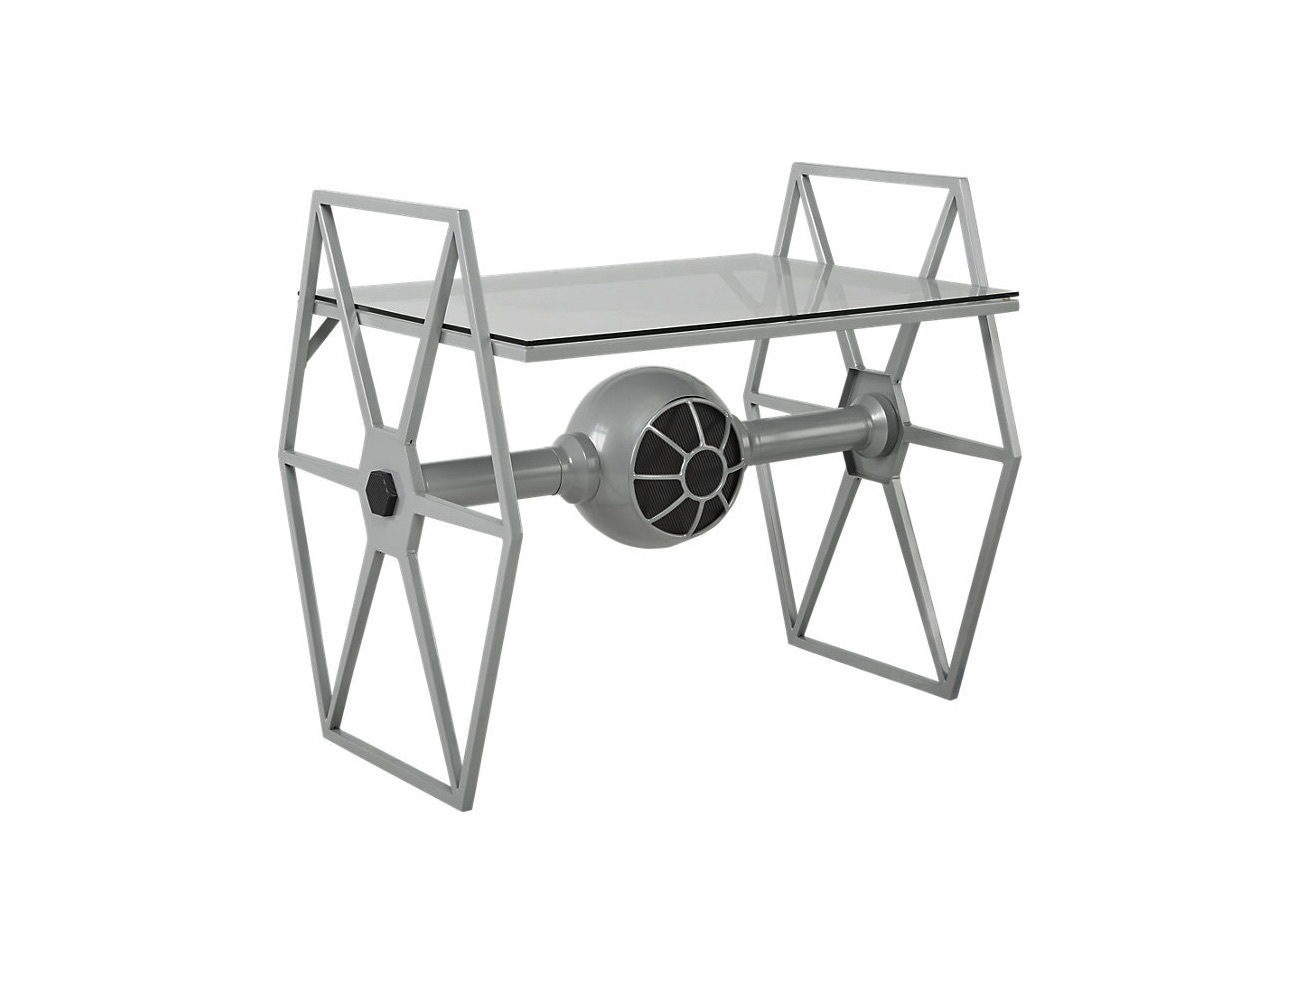 Star Wars Tie Fighter Gray Desk  Gadget Flow